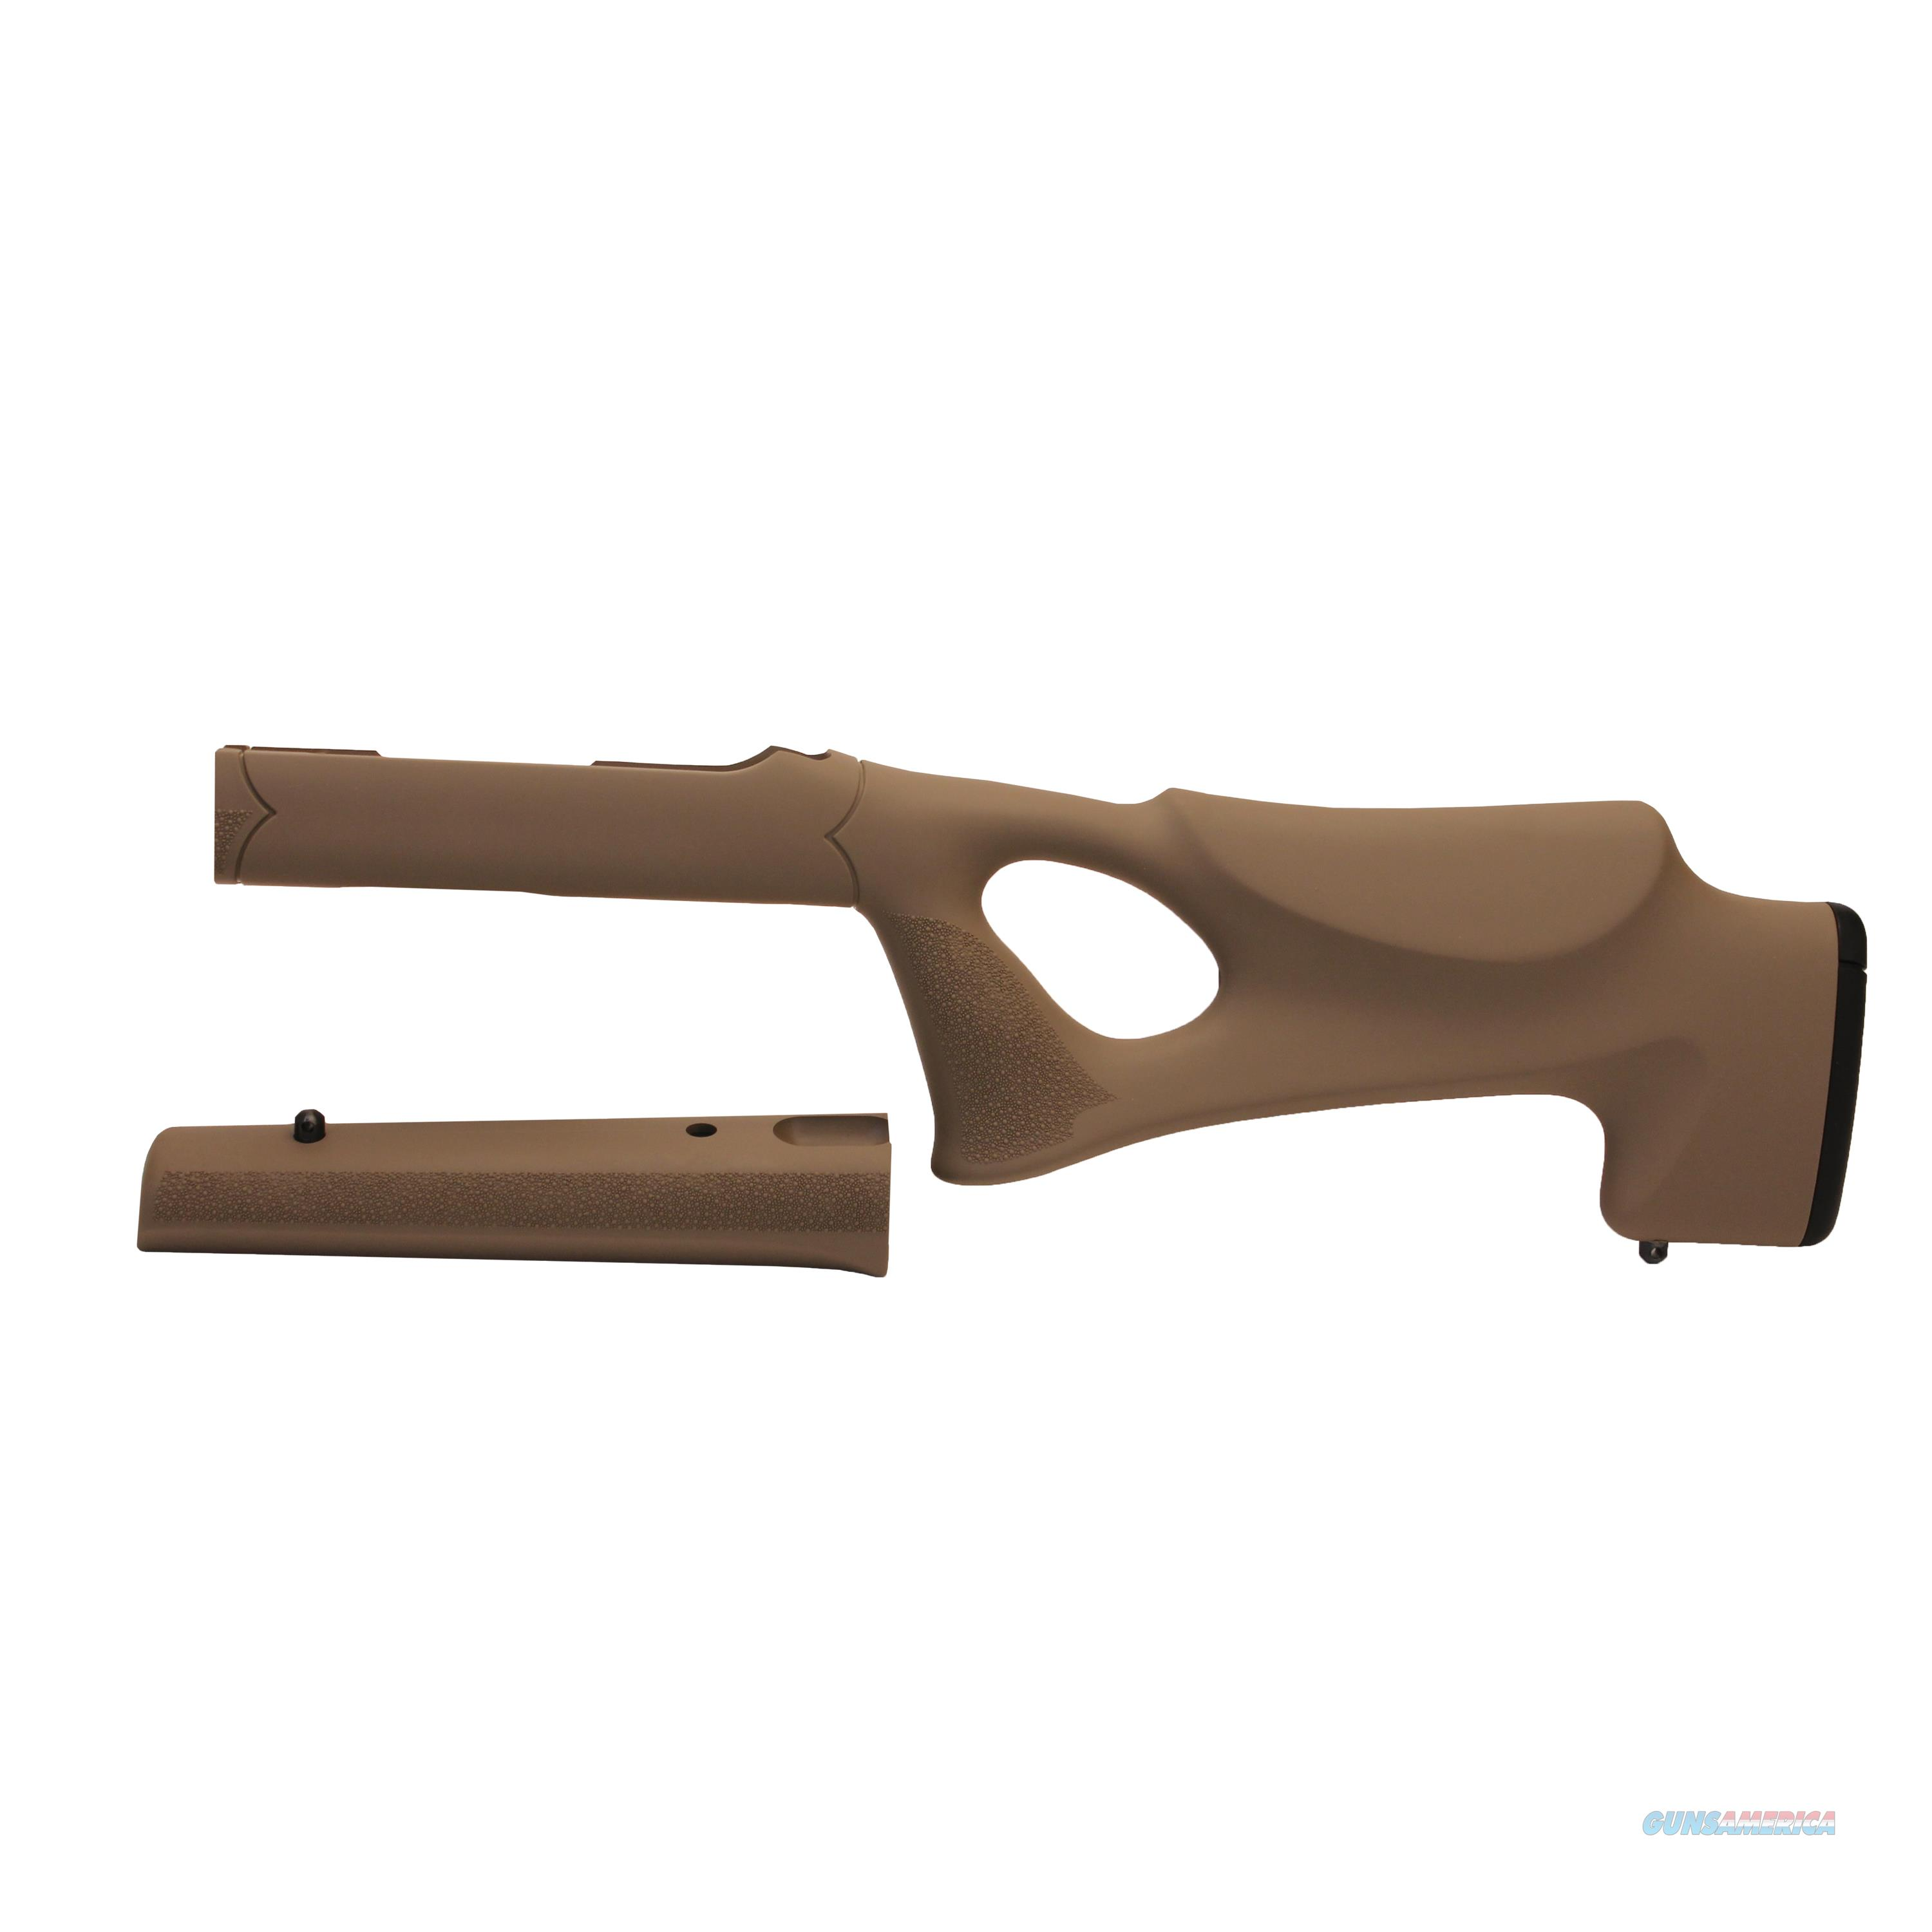 Hogue 10/22 Takedown Thumbhole Standard Barrel Rubber Overmolded Stock 21360  Non-Guns > Gun Parts > Misc > Rifles